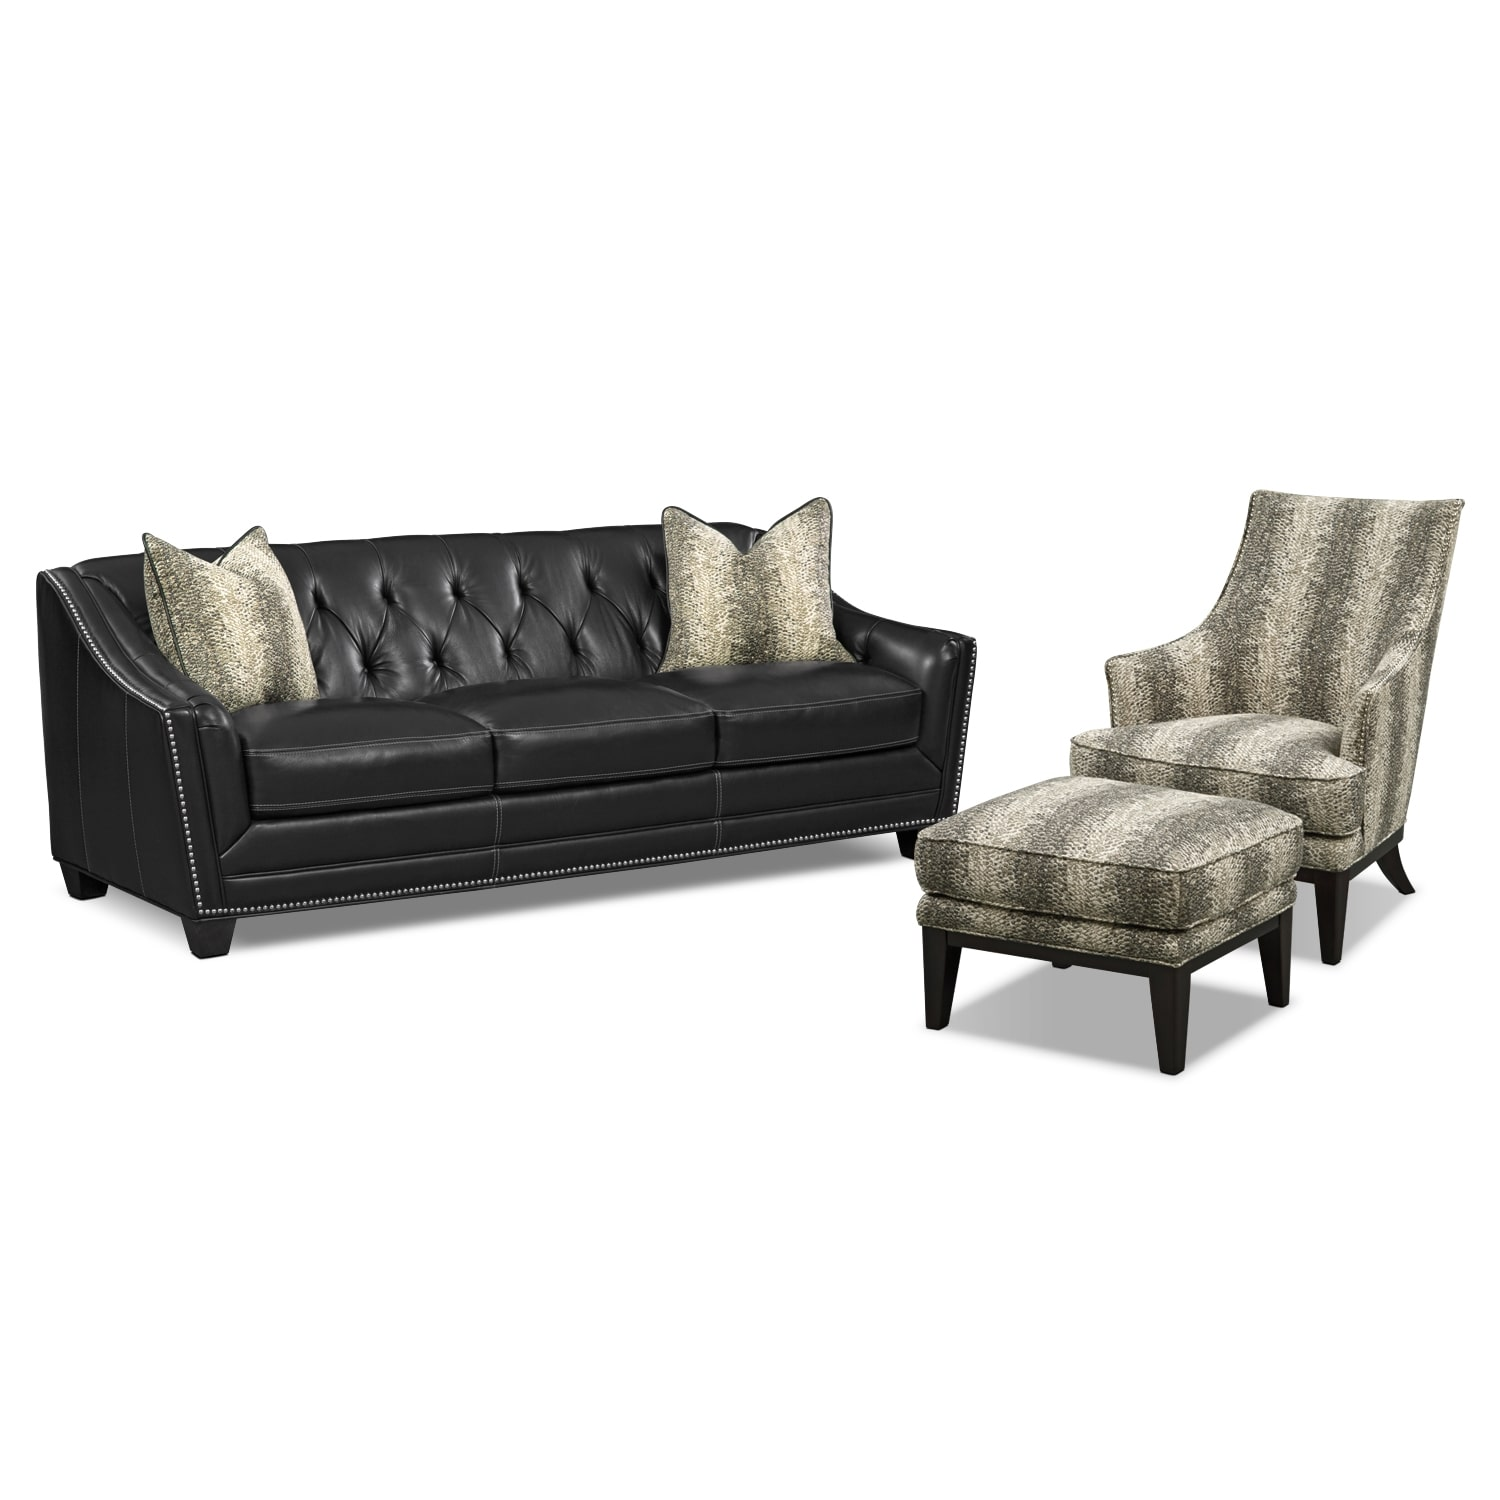 Living Room Furniture - Alexis Midnight 3 Pc. Living Room w/ Accent Chair